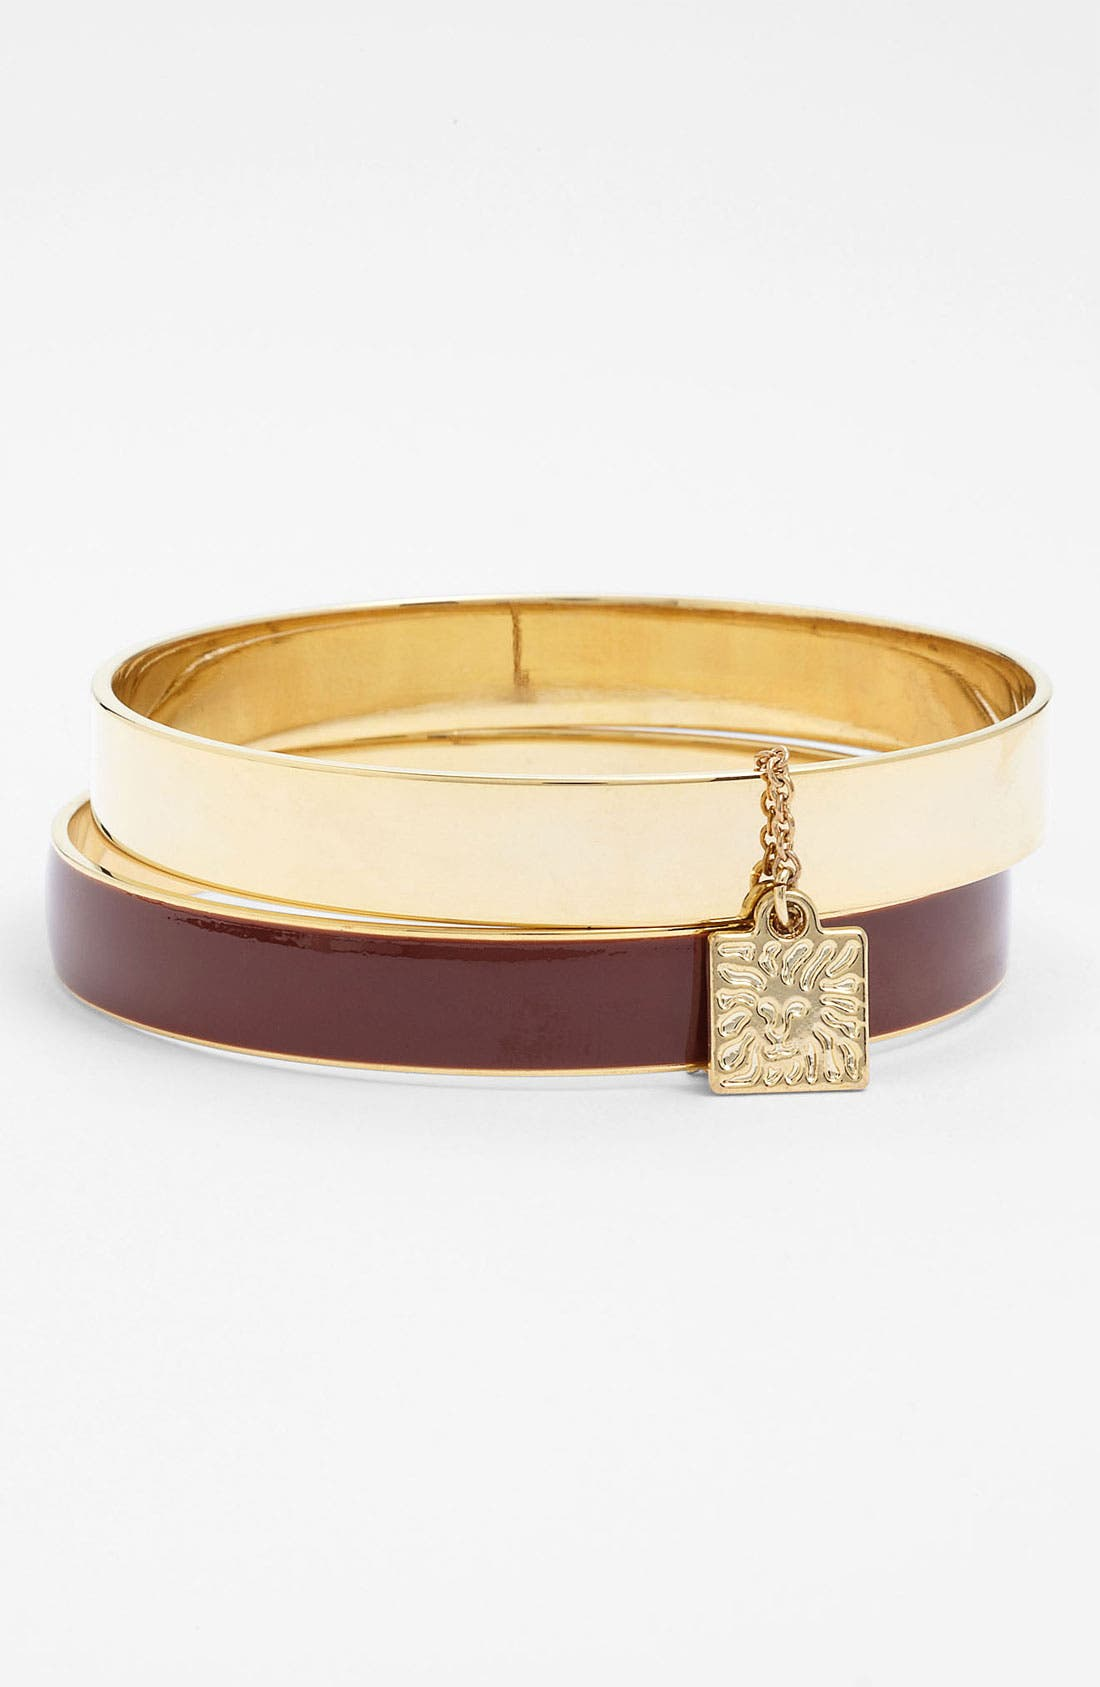 Alternate Image 1 Selected - Anne Klein Enamel Bangles (Set of 2)